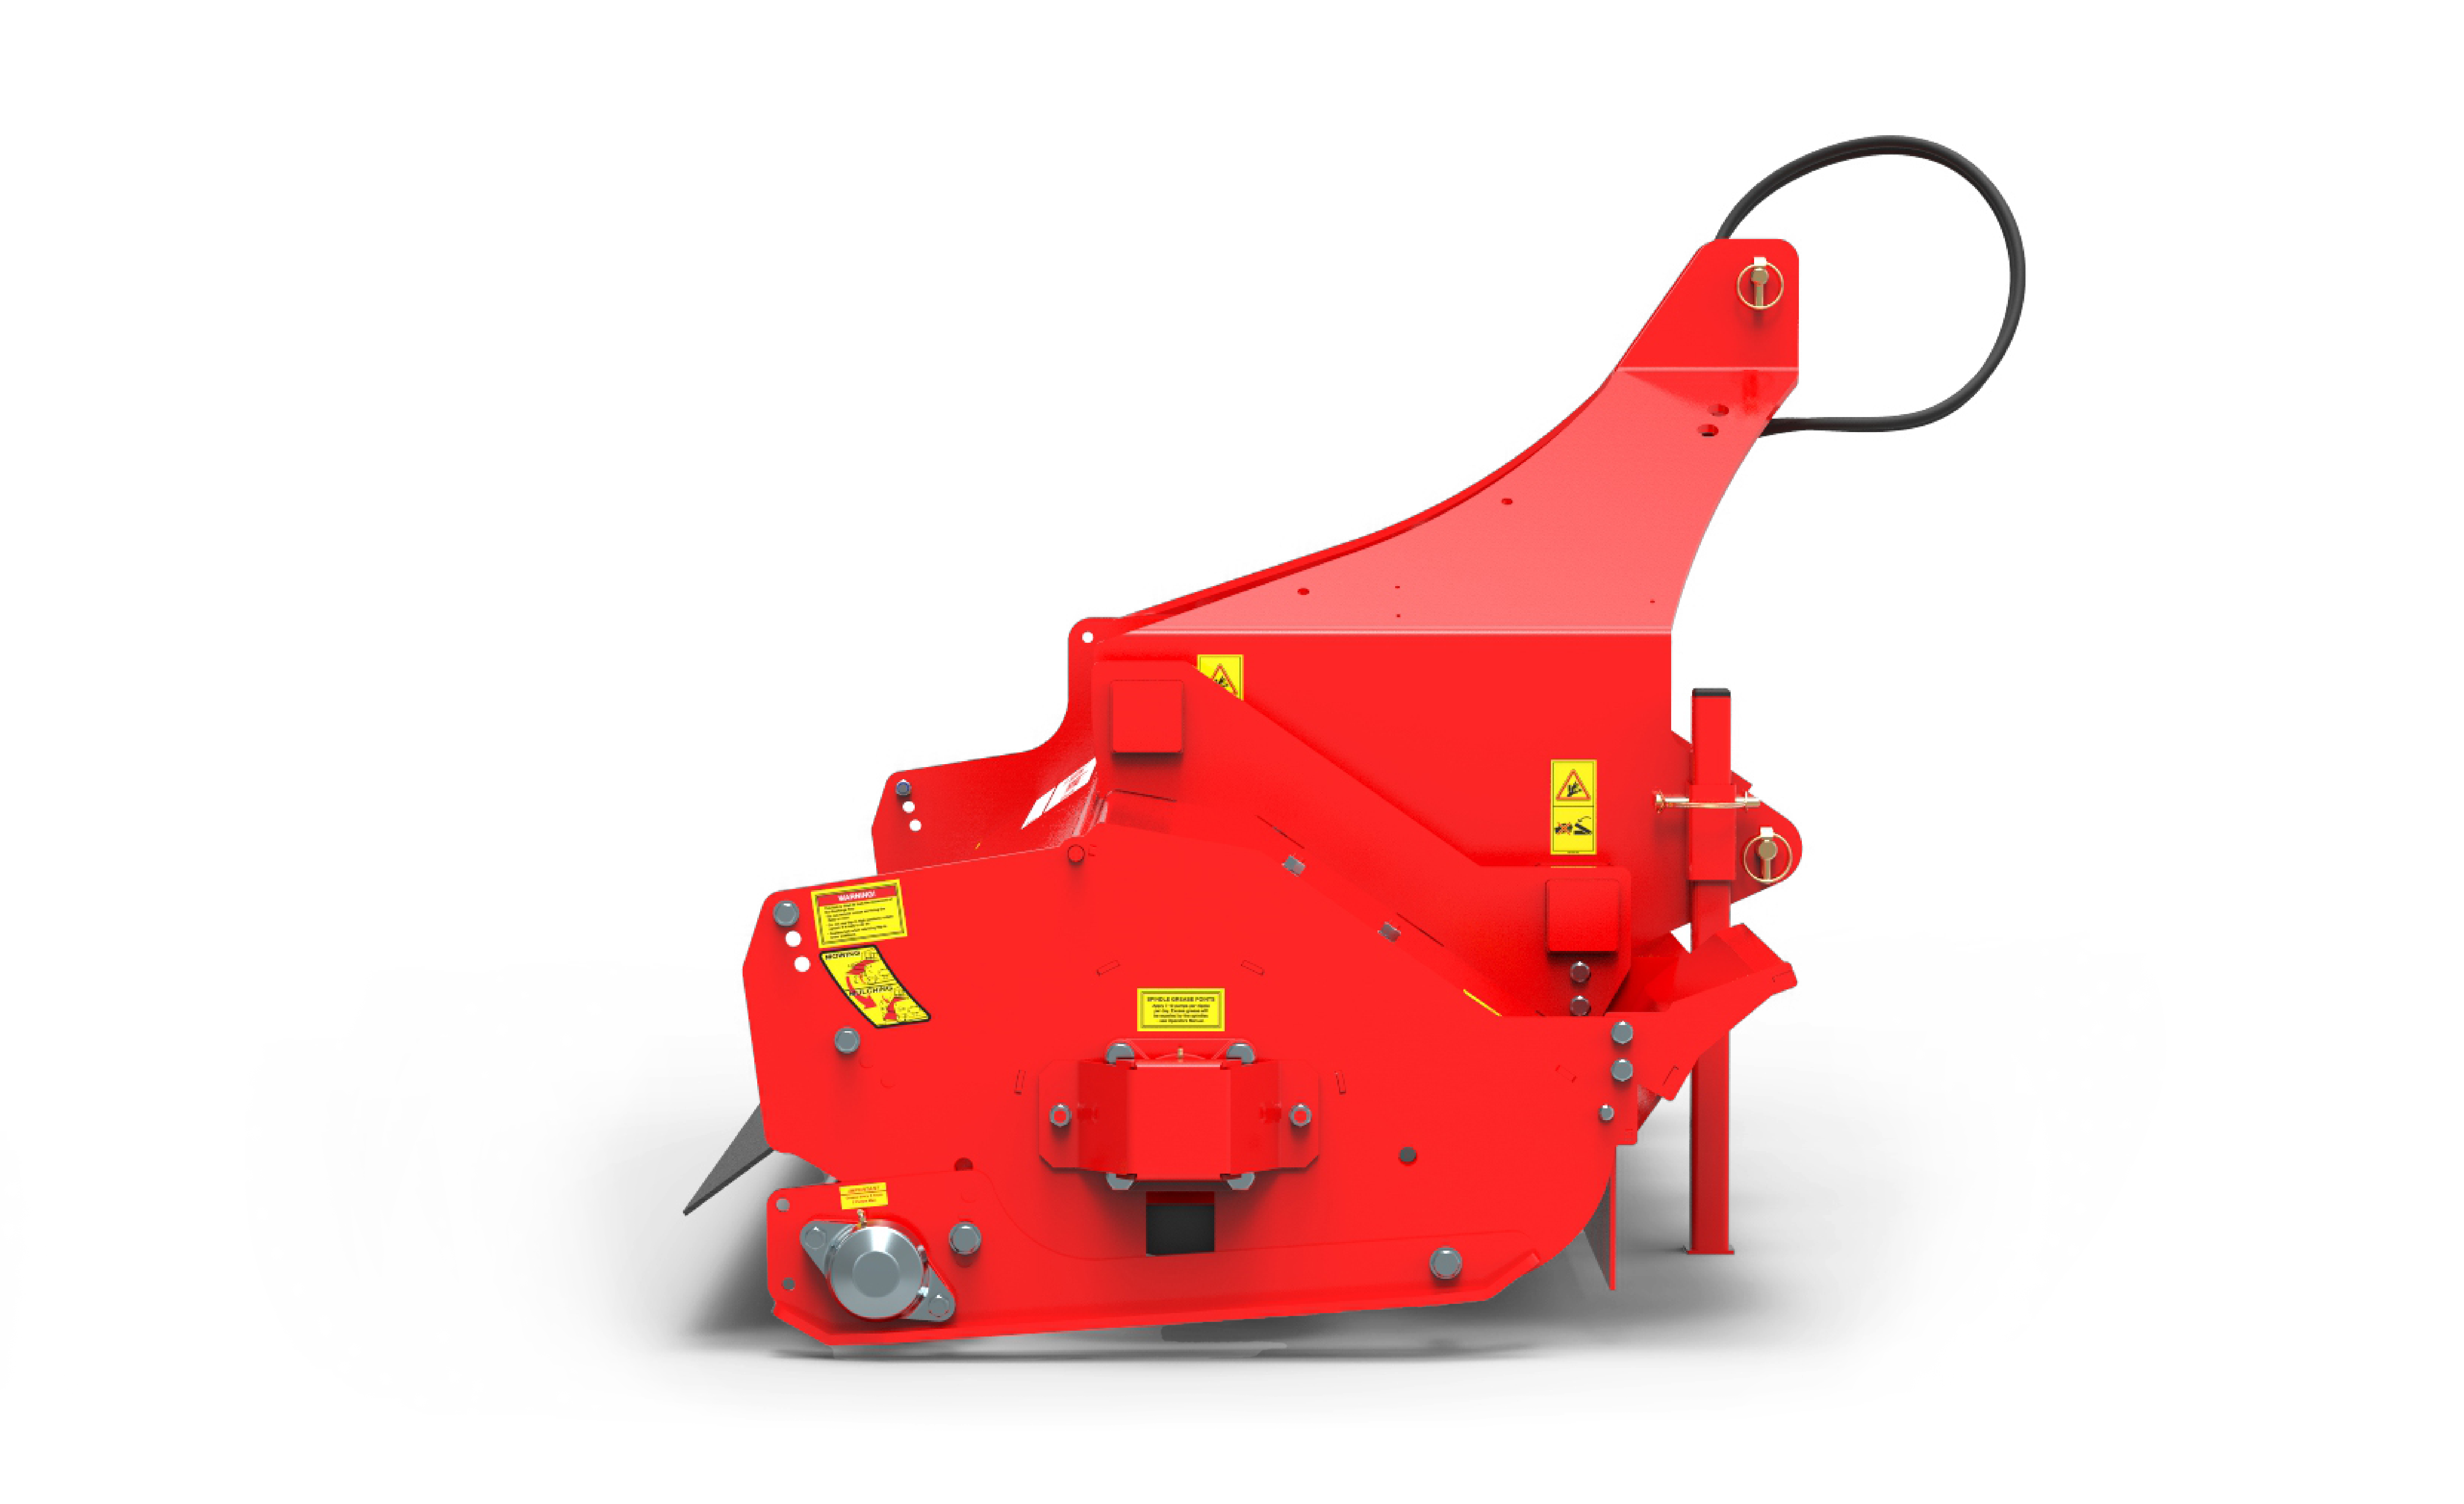 Warlord S3 sideview Mower red